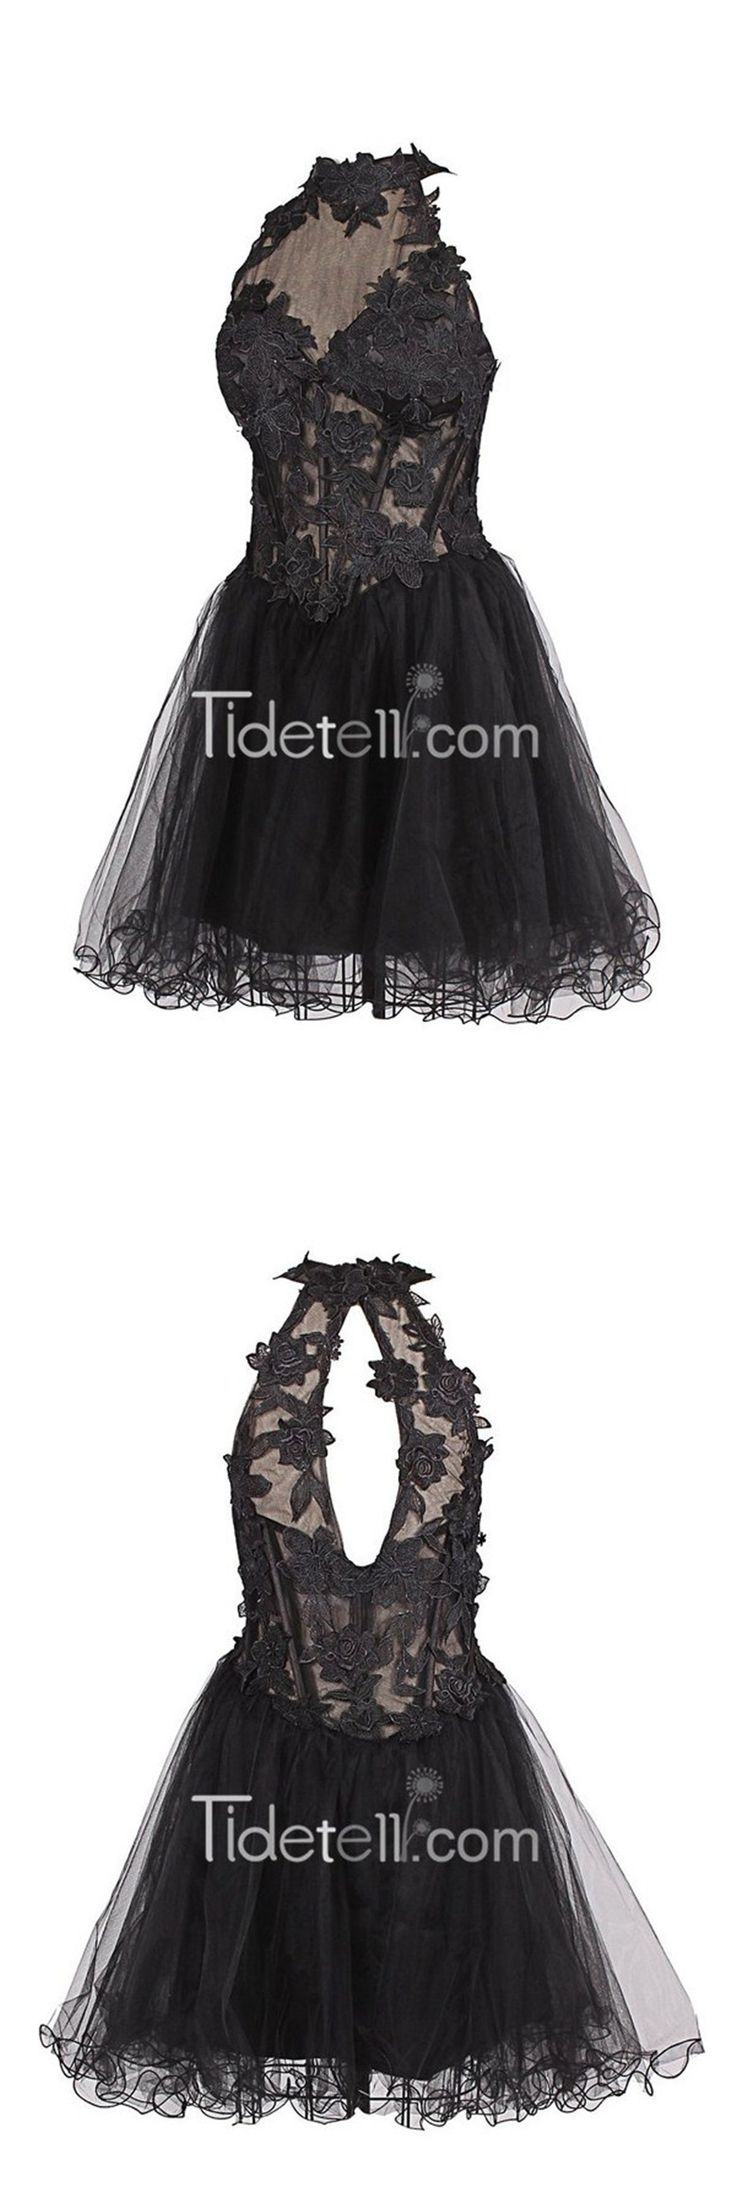 homecoming dress,black homecoming dress,tulle homecoming dress,halter homecoming dress,homecoming dress with appliques,prom dress,short prom dress,modest prom dress,sexy homecoming dress,cheap homecoming dress